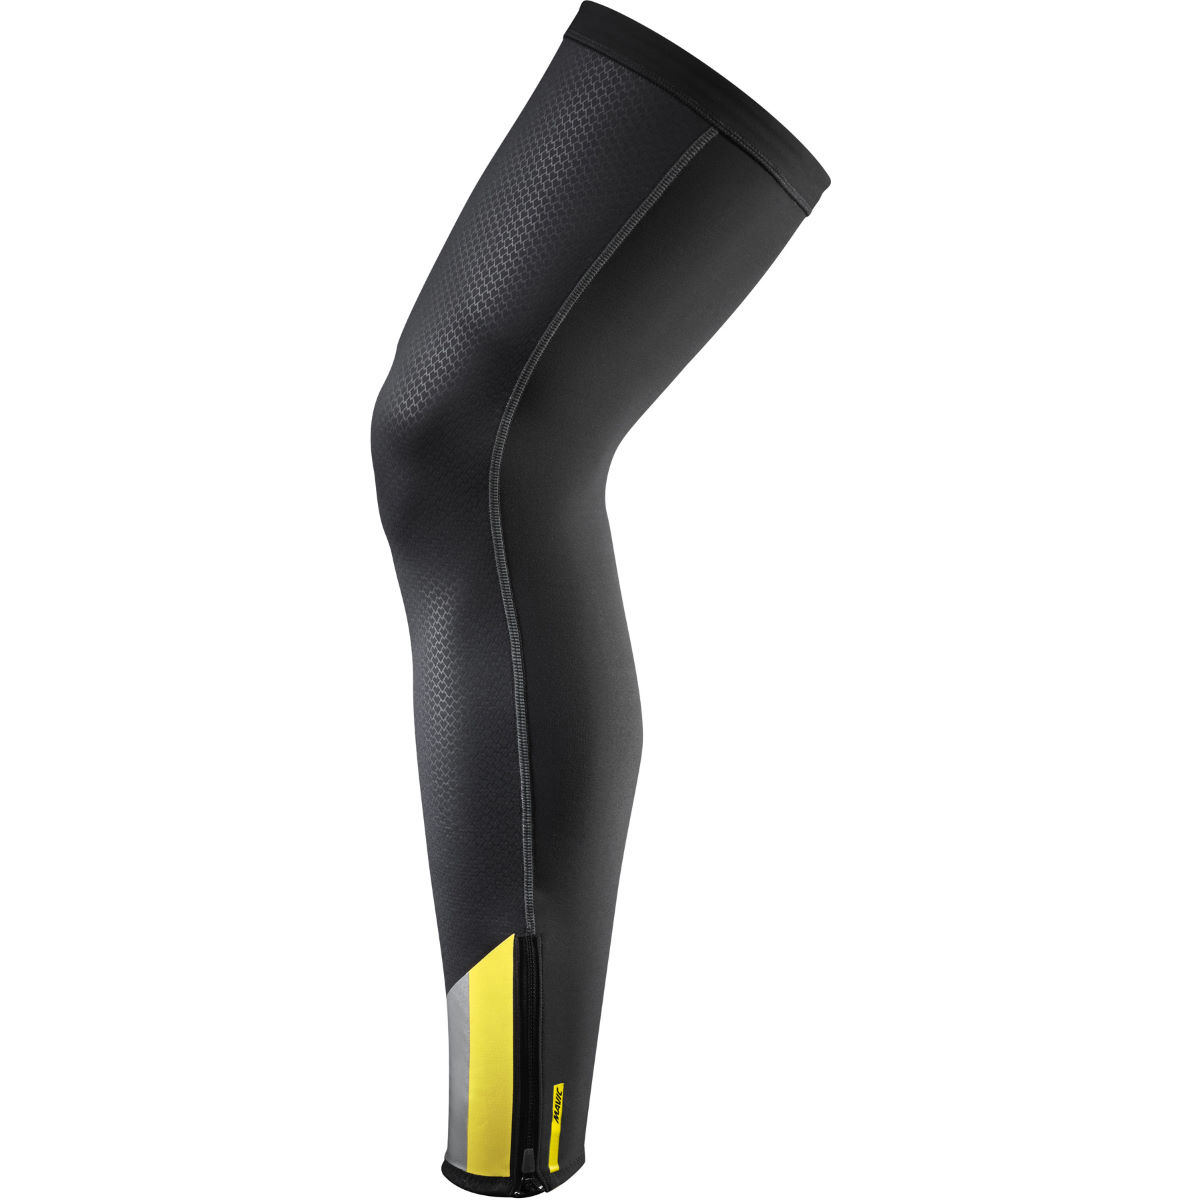 Fun to wear every day or just for special events and parties, we have the leg warmers for women you could want from basic black, to soft stretch, light-up LEDs, hot pink, and ruffles. neyschelethel.ga also offers women's leg warmers for dancers, performers, and athletes.